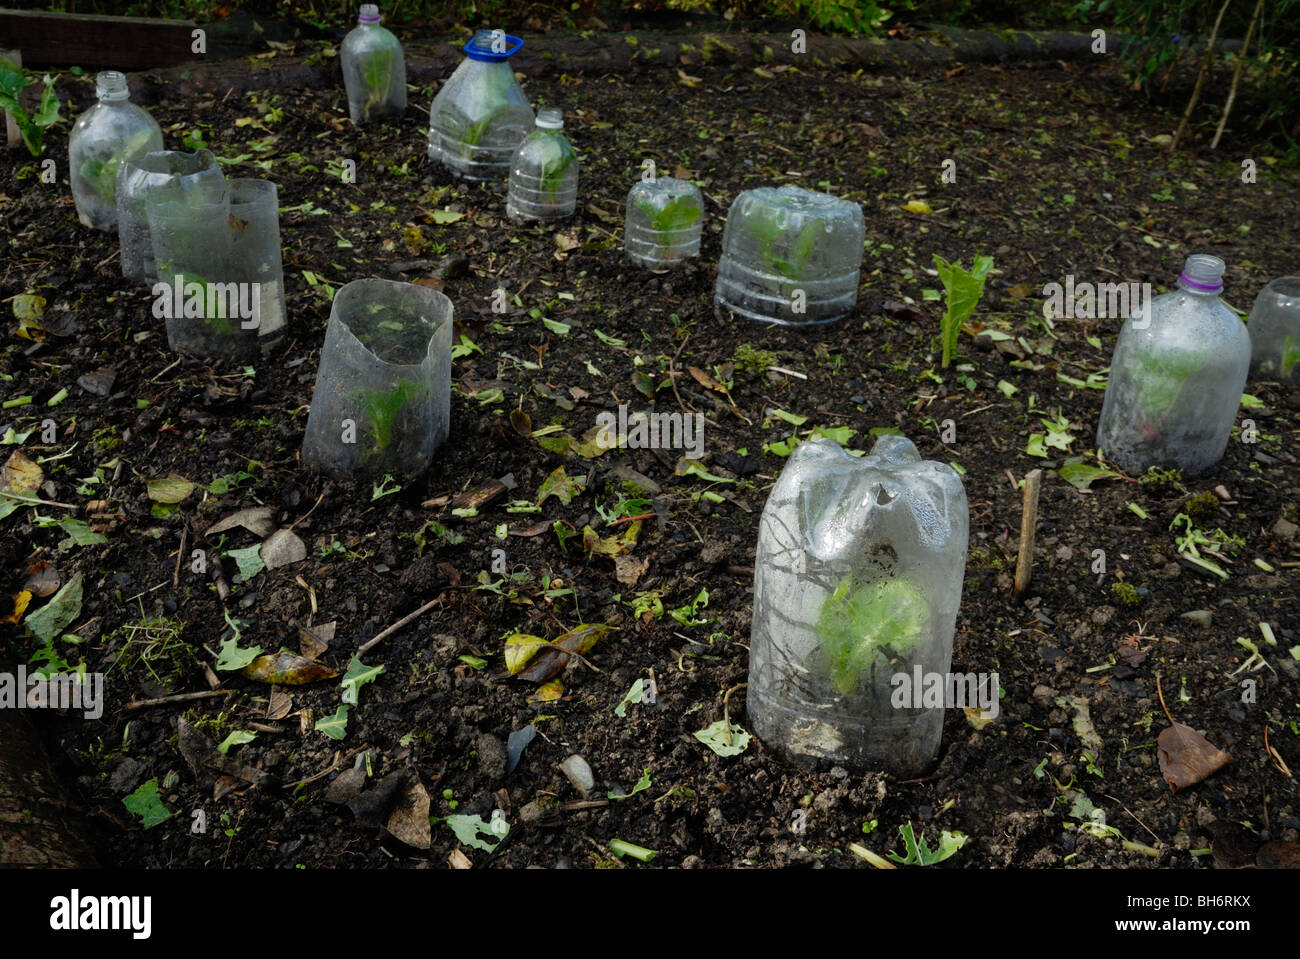 Young Spinach plants protected from pests and frost with plastic bottles, Wales - Stock Image